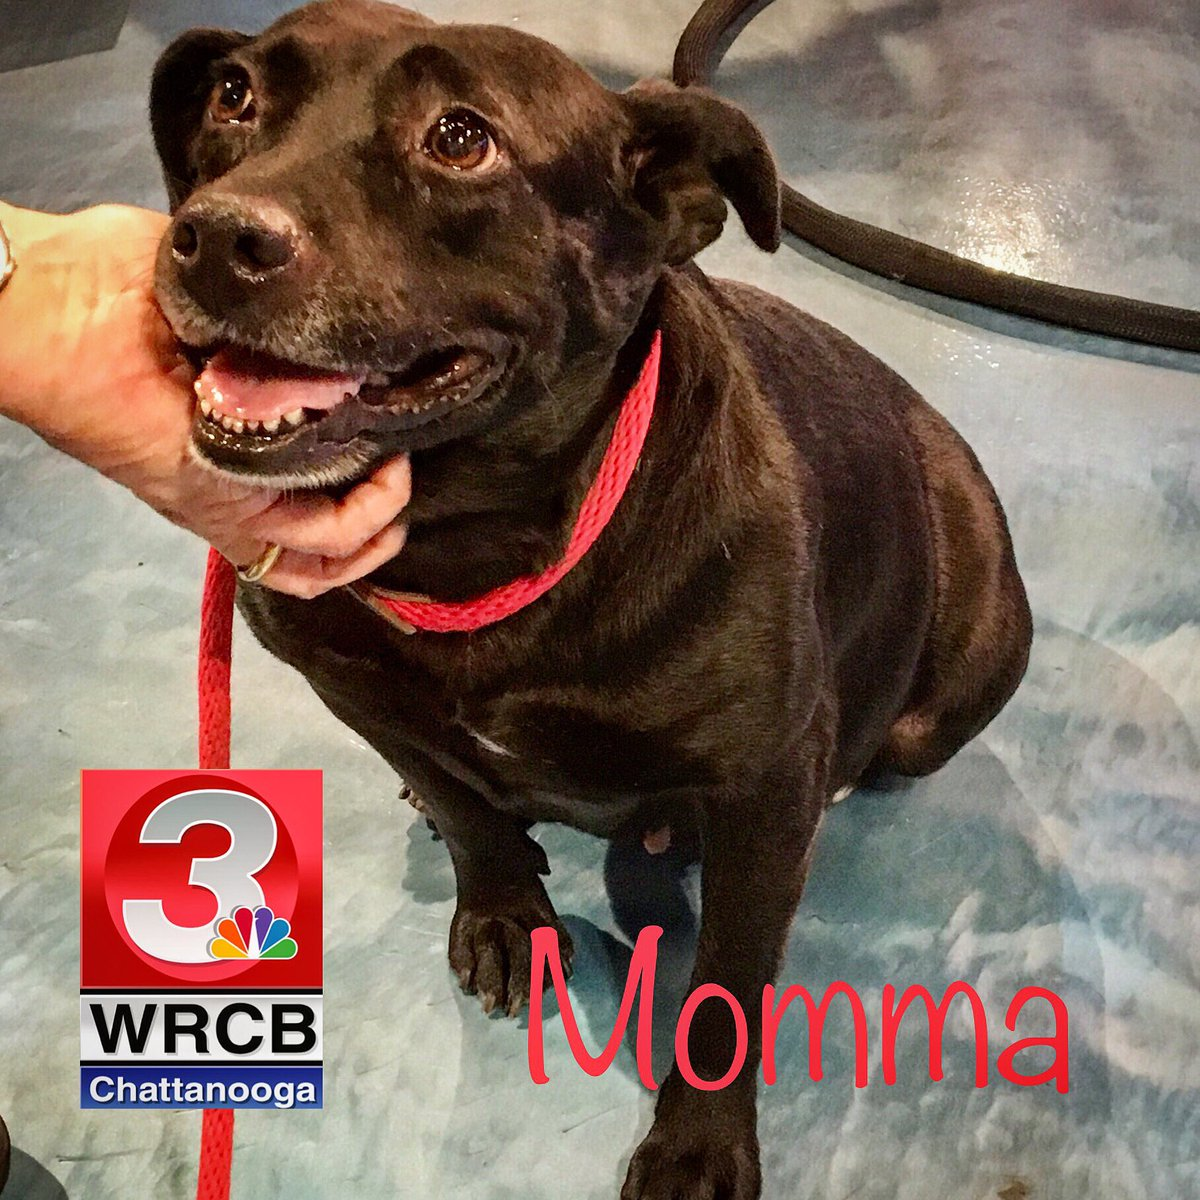 Sweet Momma was a little nervous at first, but warmed right up by the end of her #PaulsPet segment and was ready to be our mascot! This 5-y.o. lab mix is a perfect lap companion. Find her at HES, 212 N. Highland Pk. Ave. in #CHA or get adoption info at: heschatt.org